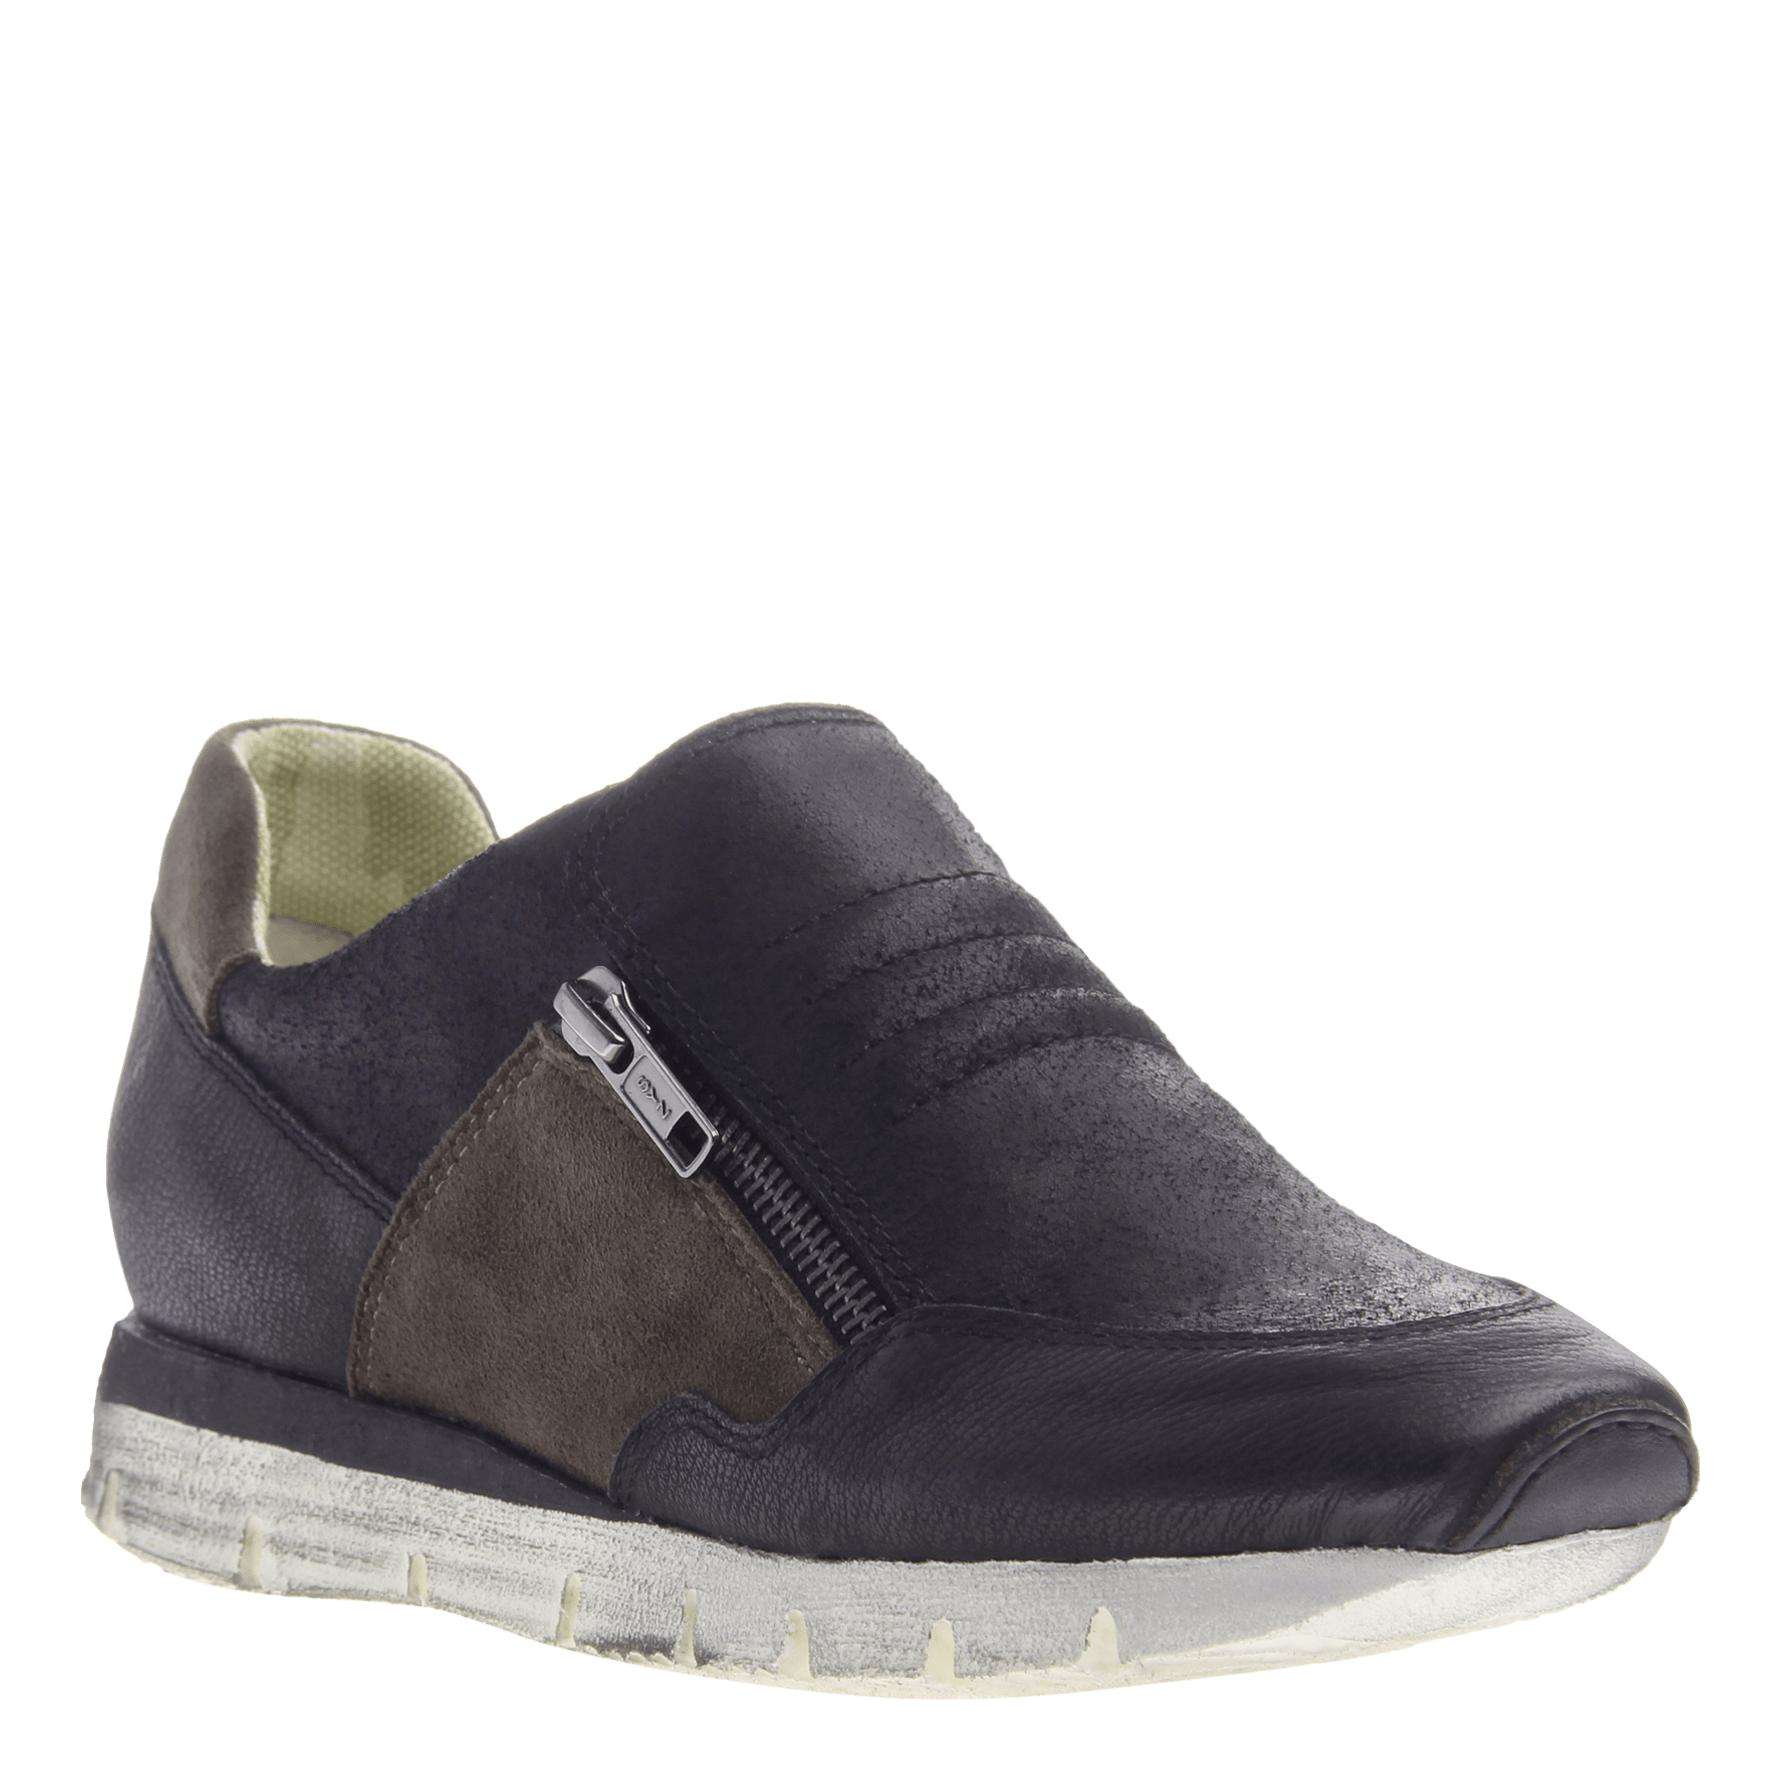 Sewell women's sneaker in New Black